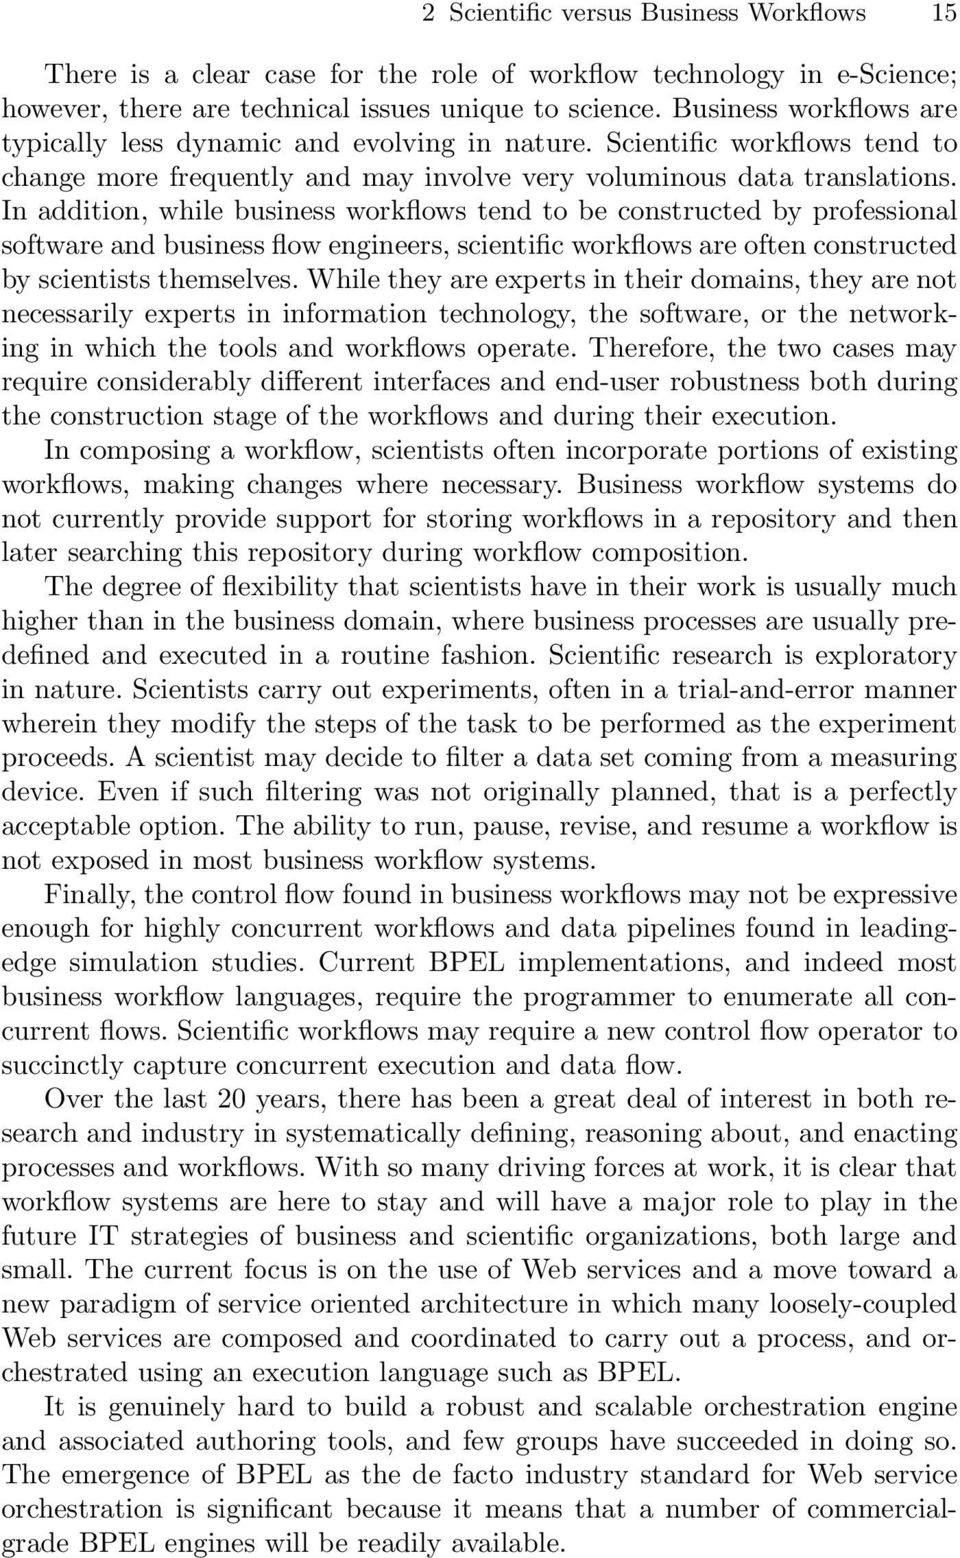 In addition, while business workflows tend to be constructed by professional software and business flow engineers, scientific workflows are often constructed by scientists themselves.